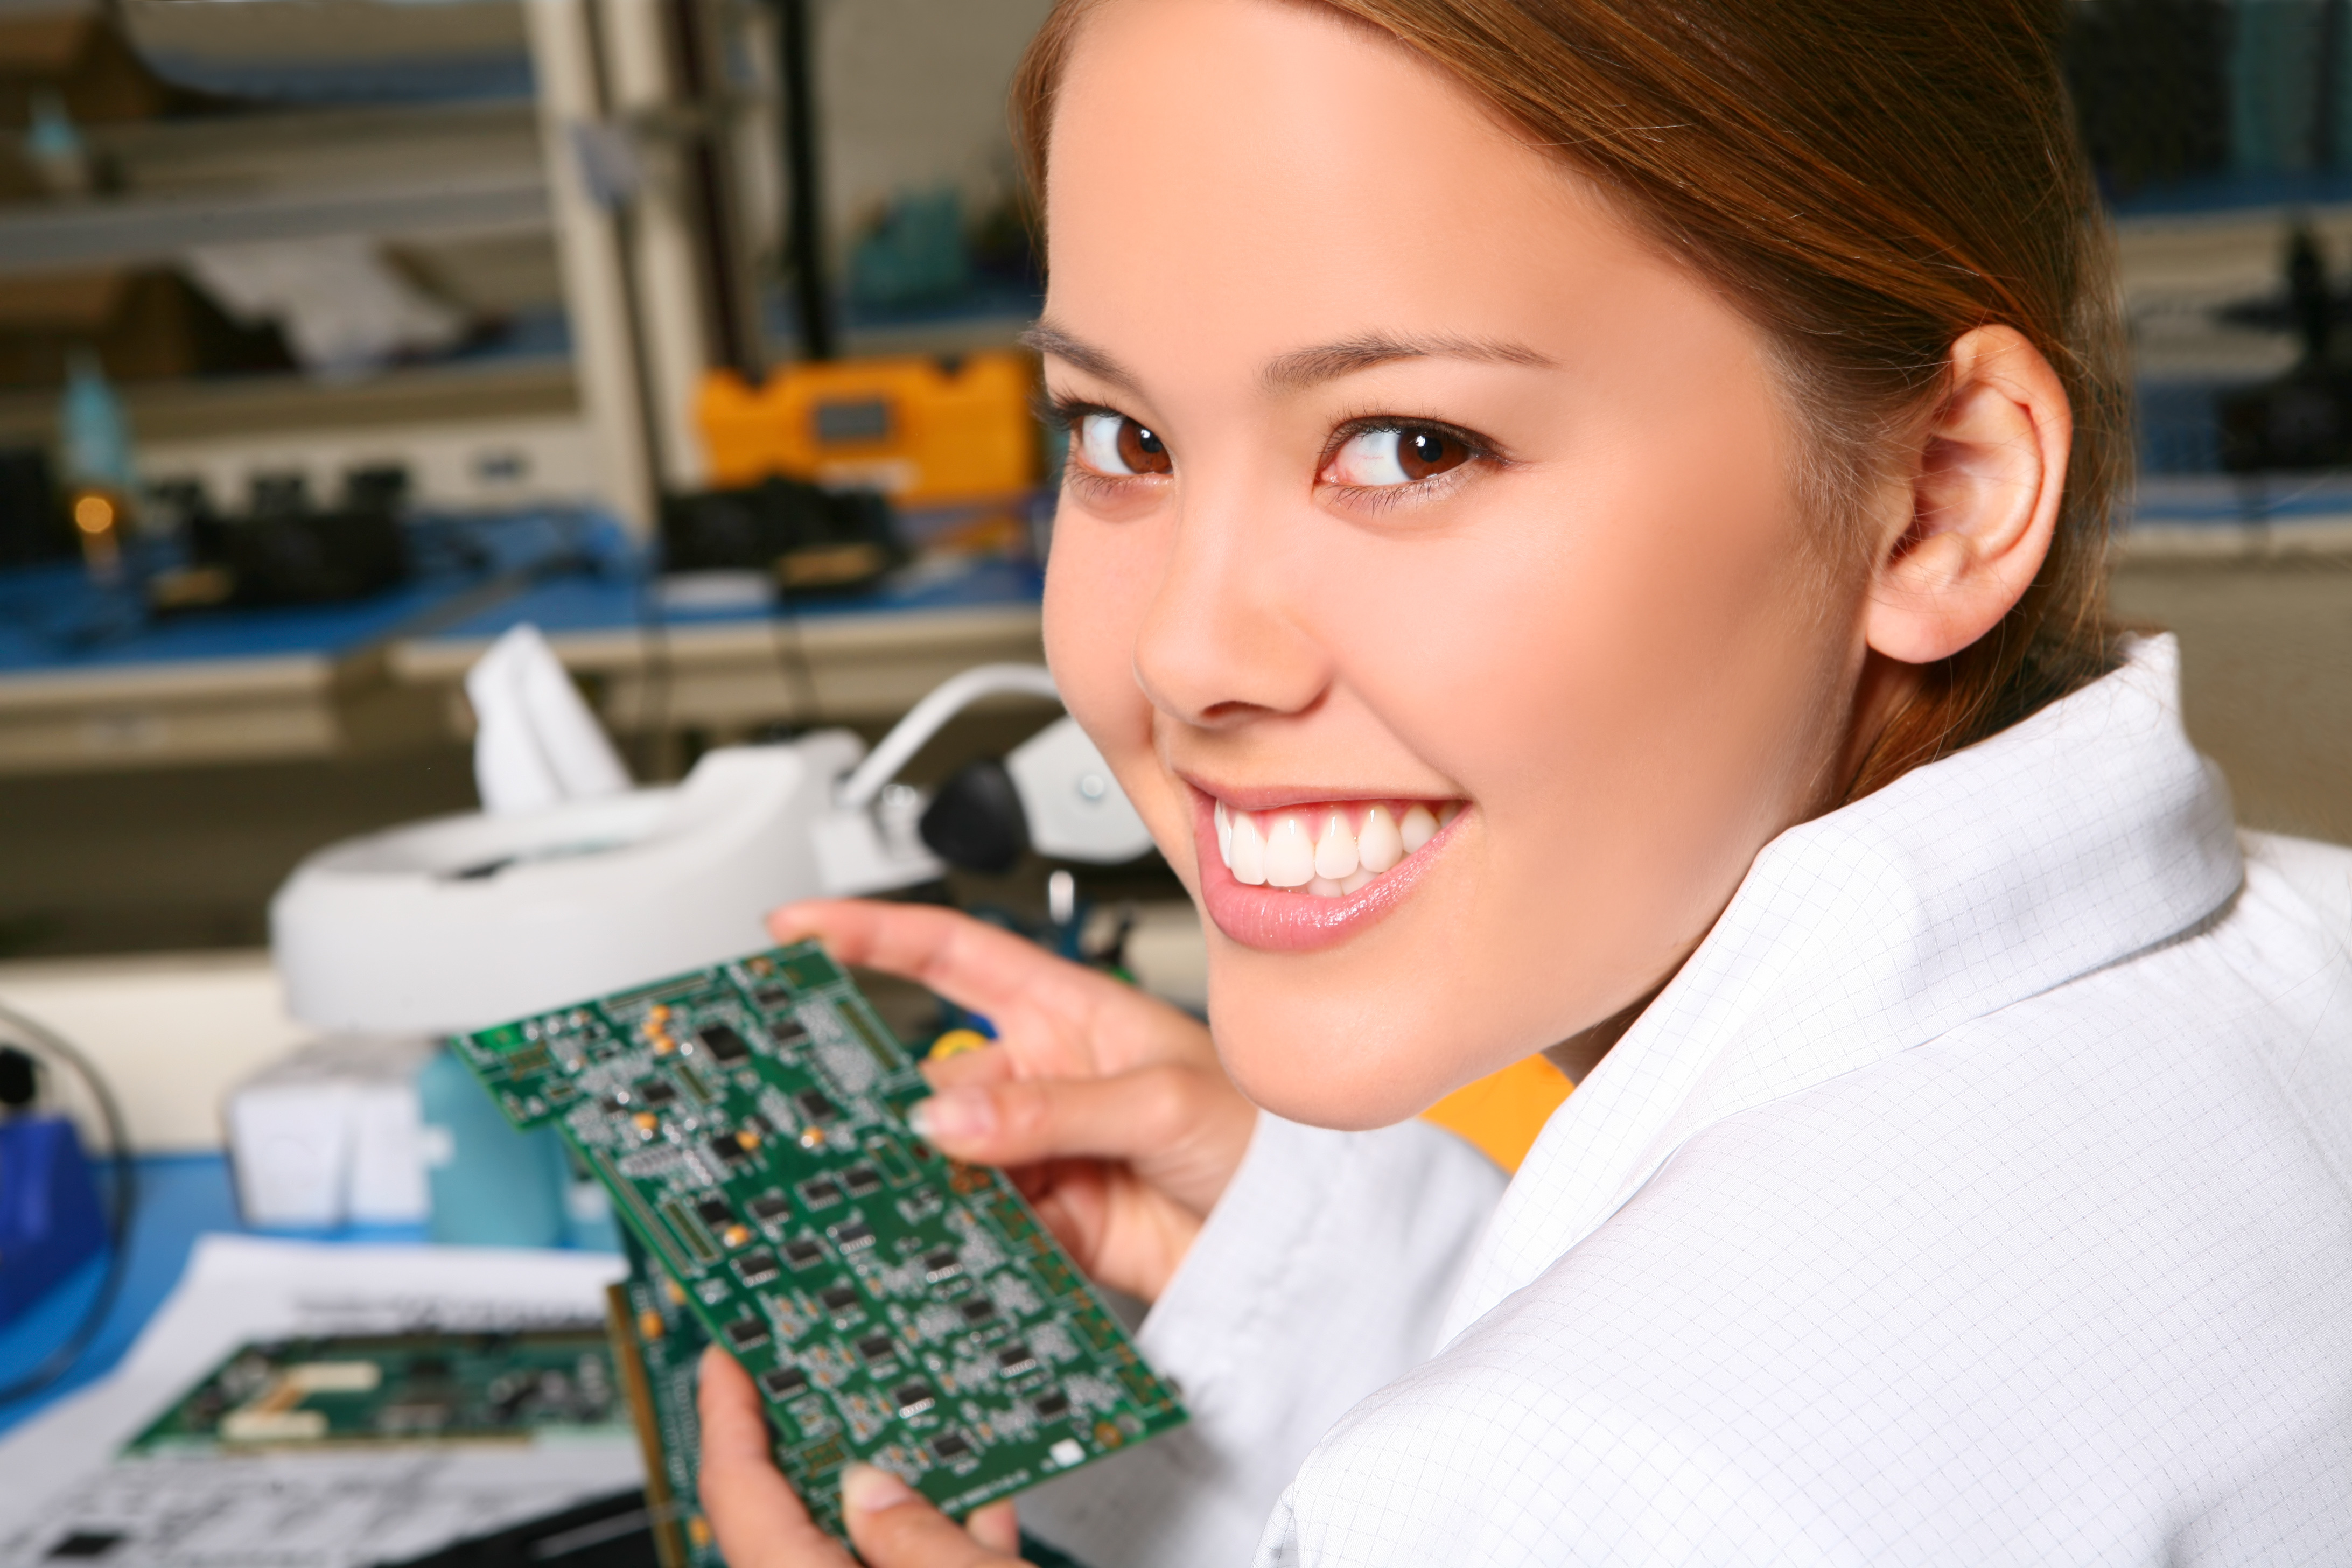 Benchmark Technology Group offers equipment repair services.